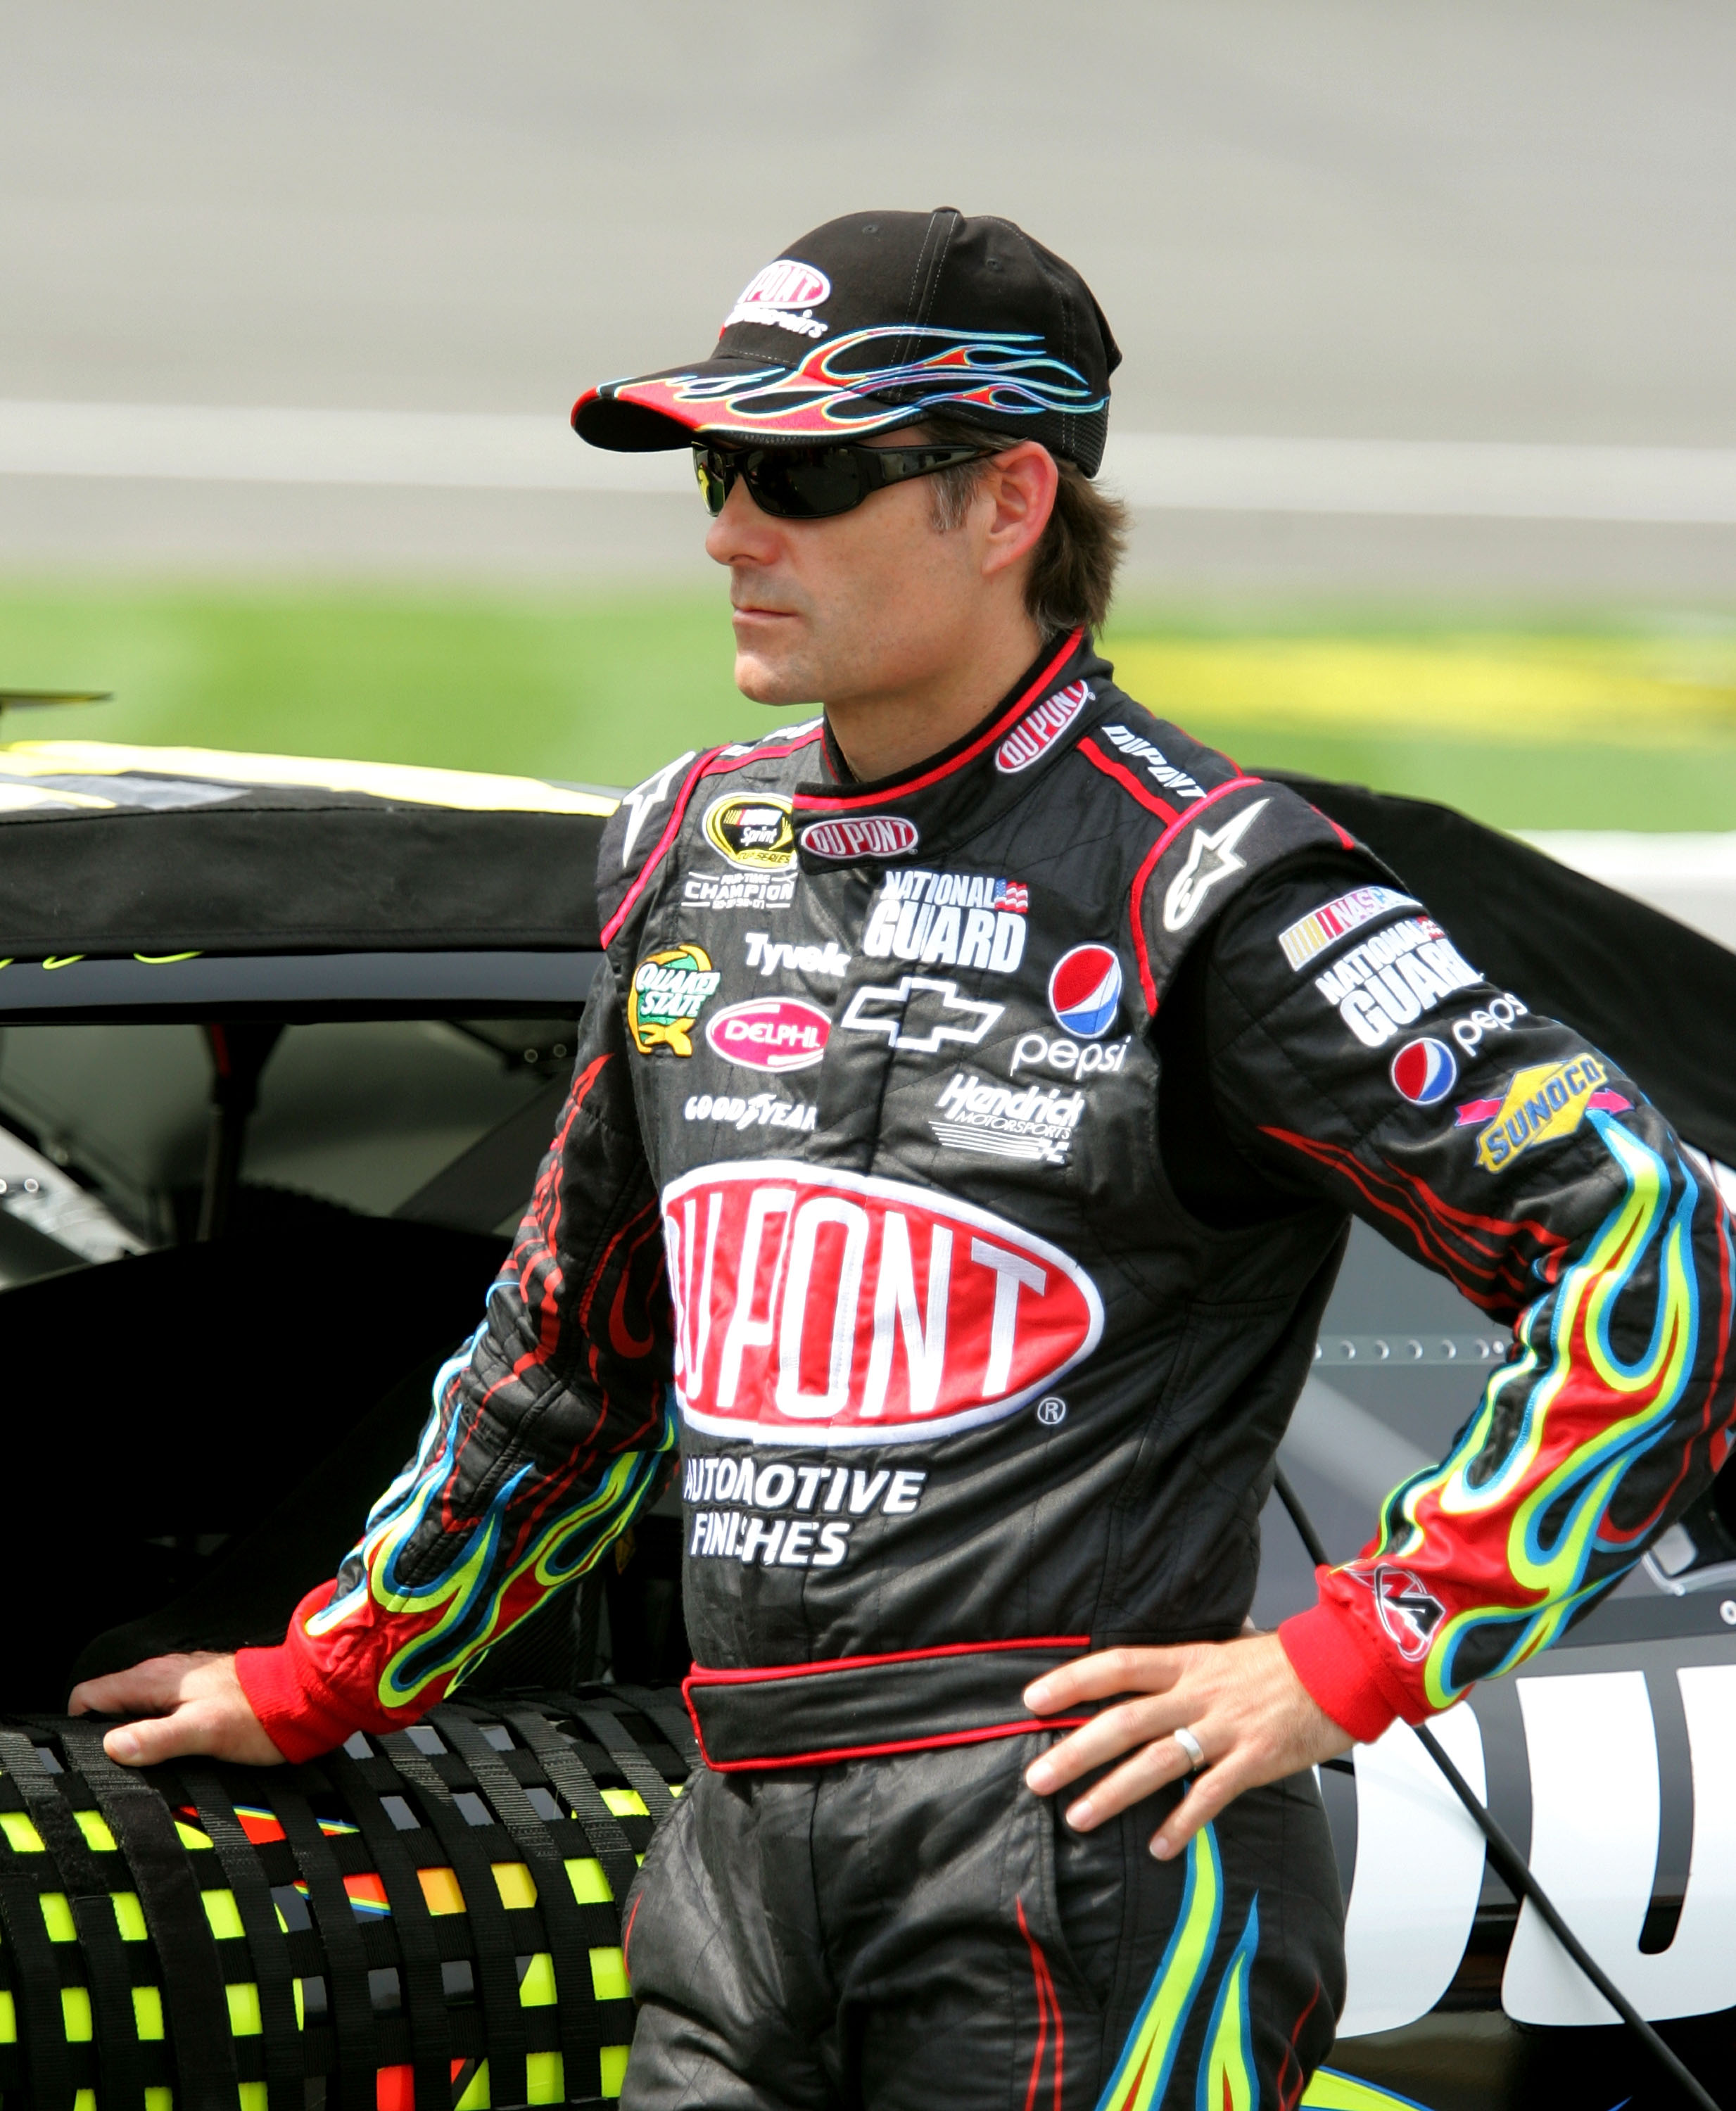 BROOKLYN, MI - AUGUST 13:  Jeff Gordon, driver of the #24 DuPont Chevrolet stands on pit road during qualifying for the NASCAR Sprint Cup Series CARFAX 400 at Michigan International Speedway on August 13, 2010 in Brooklyn, Michigan.  (Photo by Jerry Markl